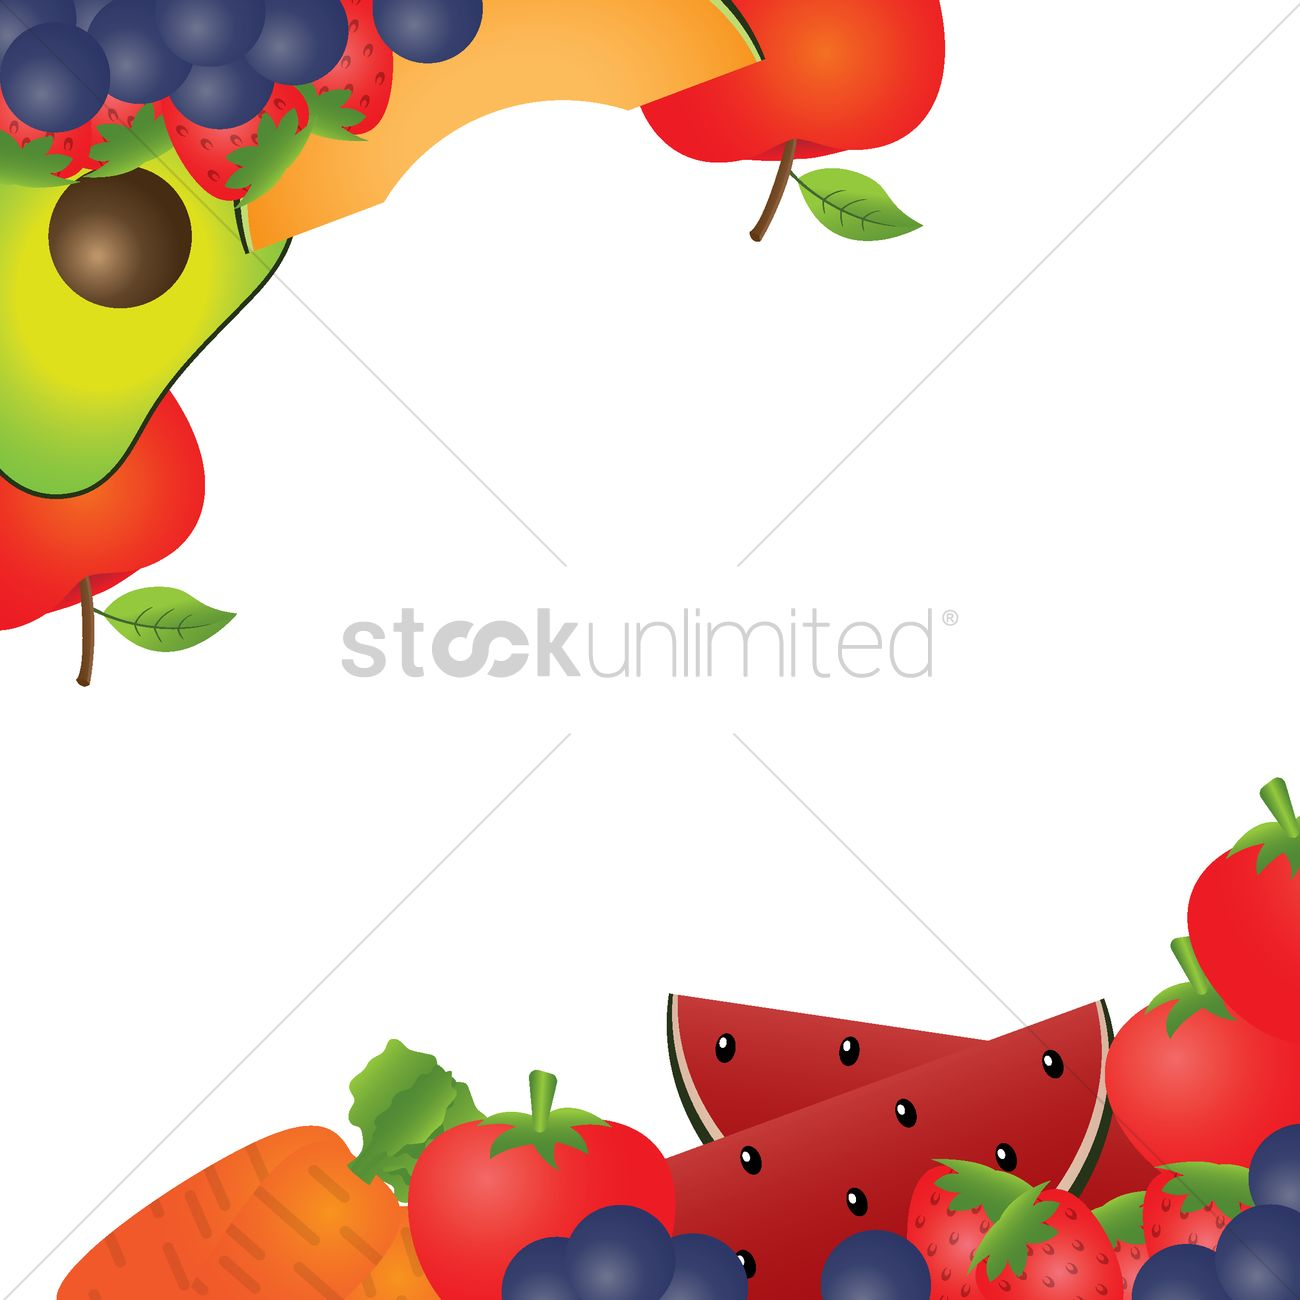 fruits and vegetables background design vector image 1979009